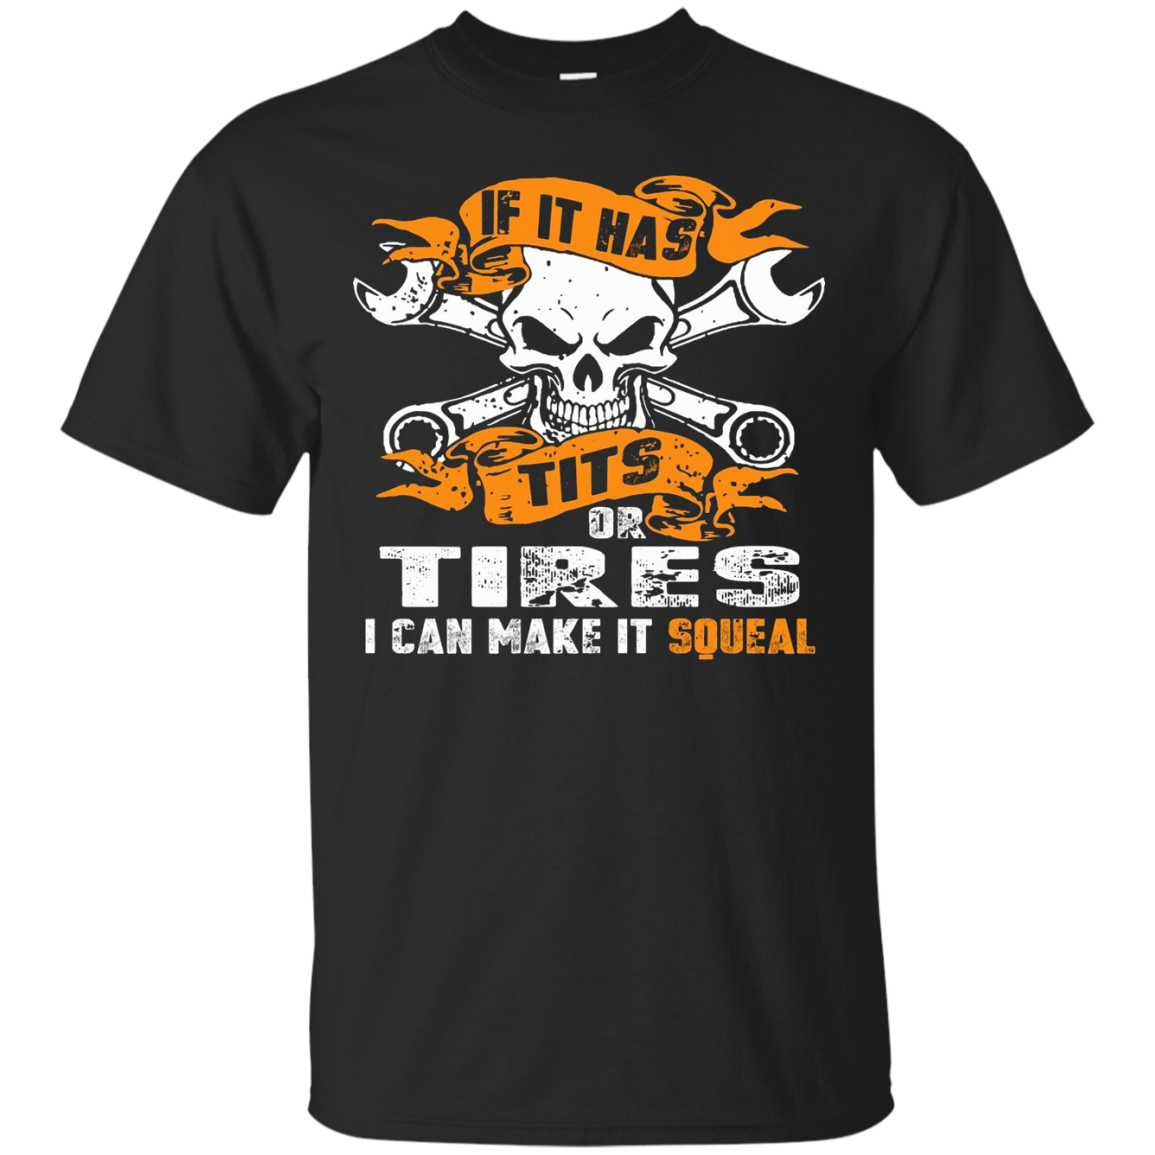 Mechanic Shirt If it has Tits or Tires i can make it squeal